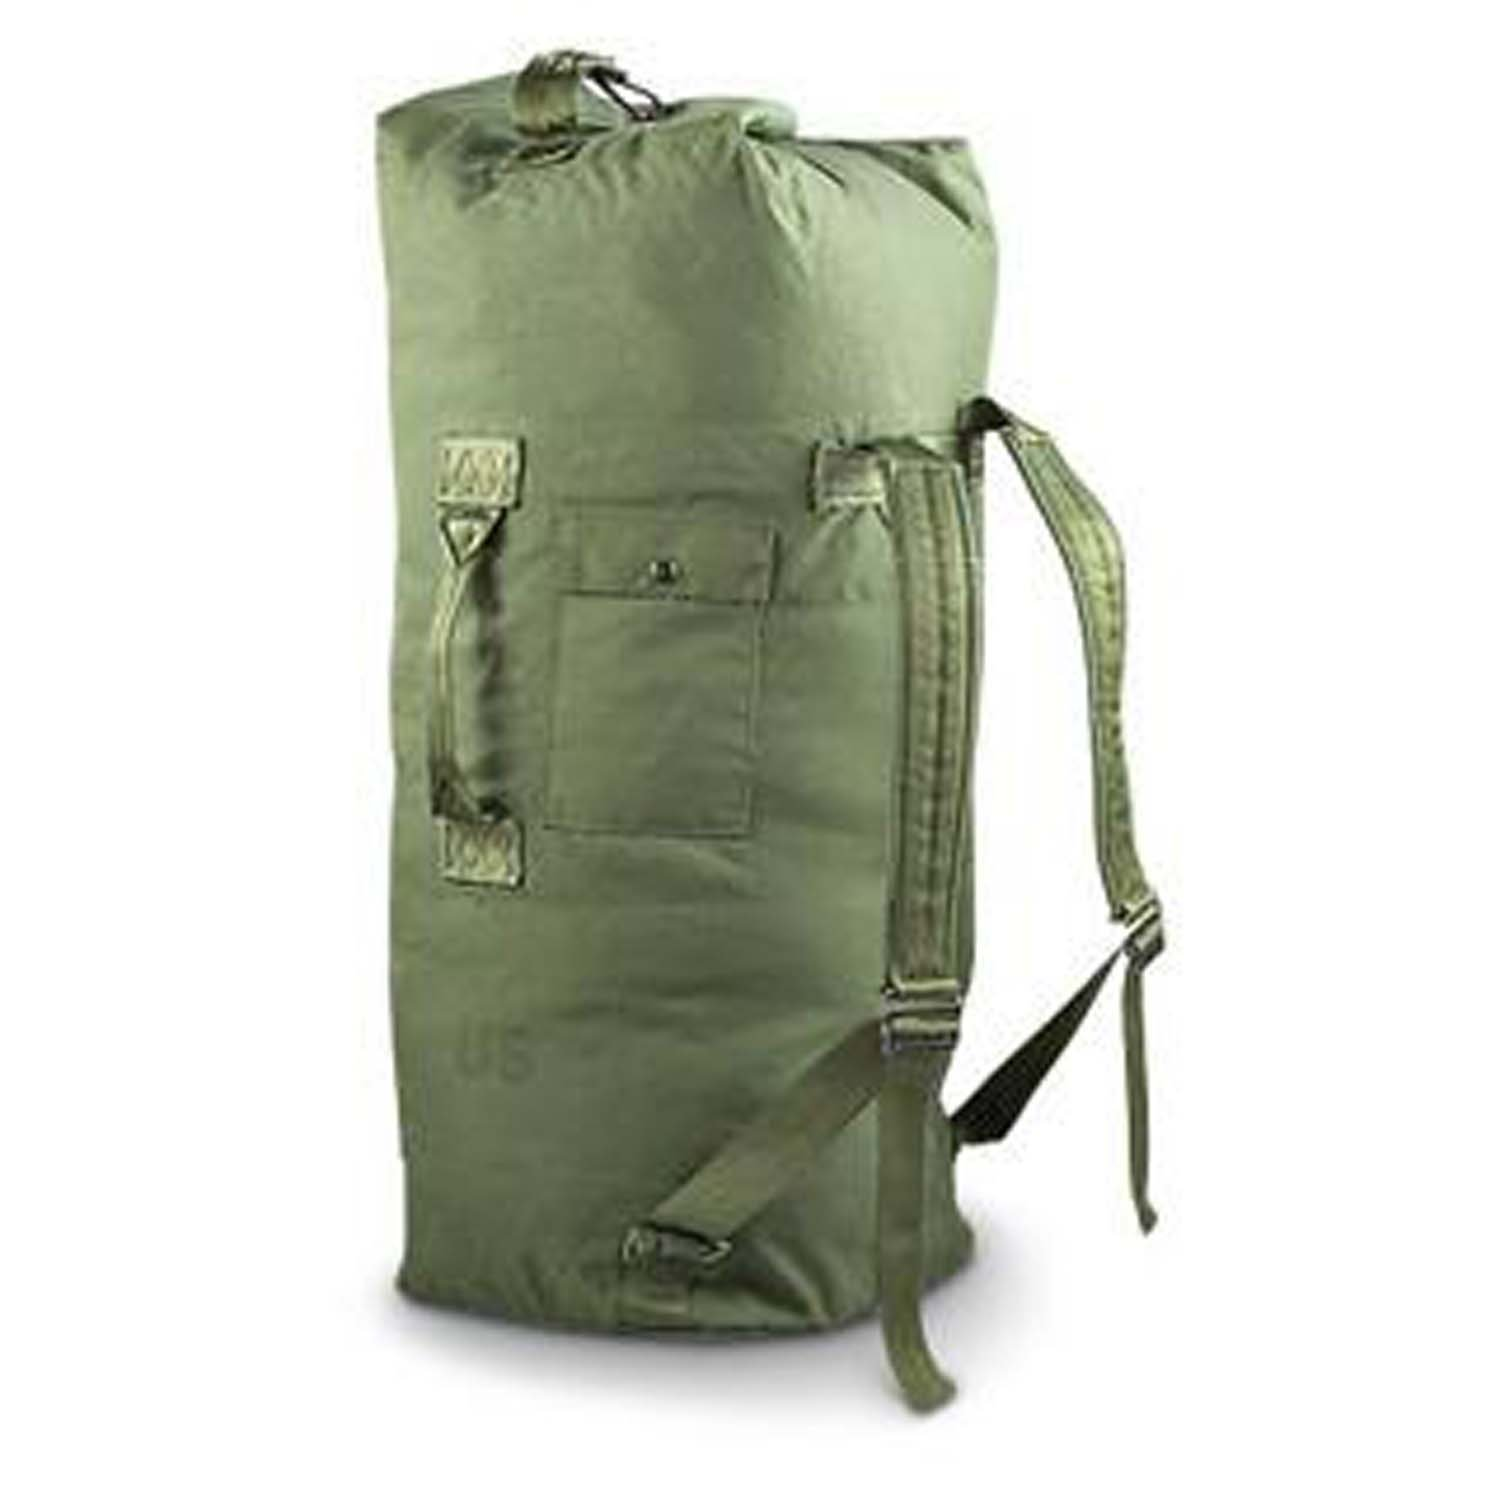 Military Outdoor Clothing Previously Issued Government Olive Drab Cordura 2 Strap Duffle Bag